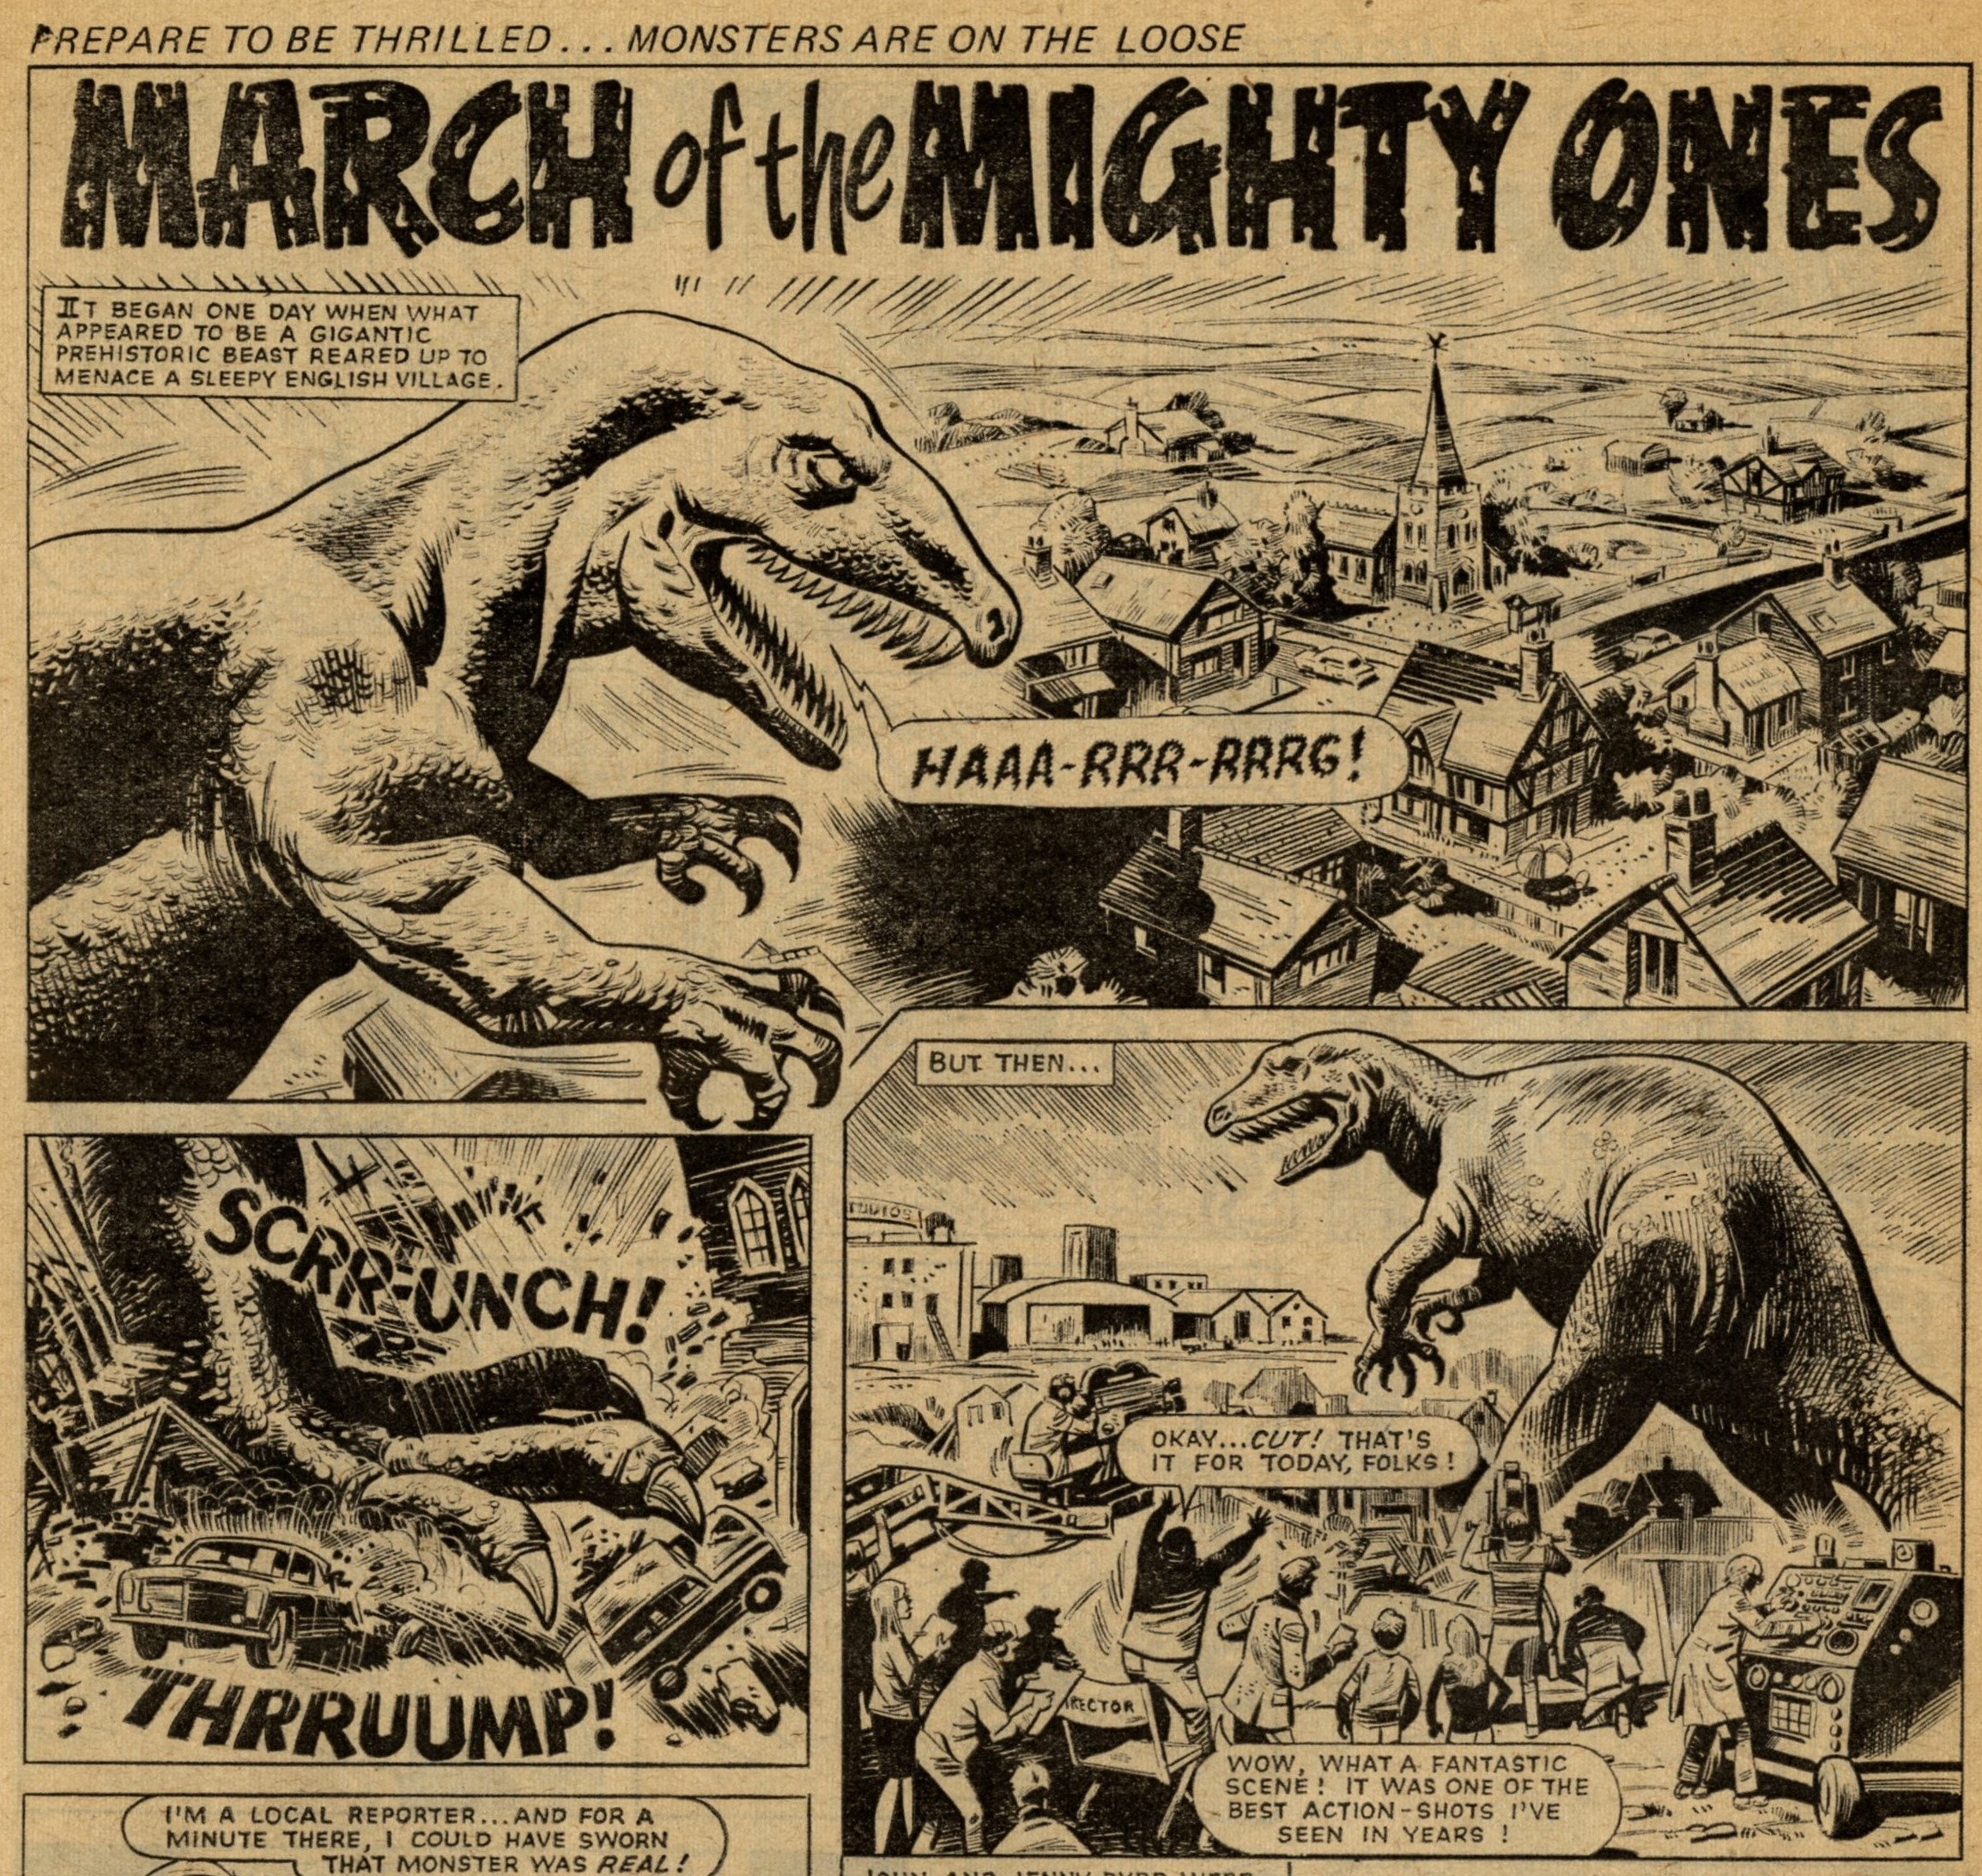 March of the Mighty Ones: Mike White (artist)